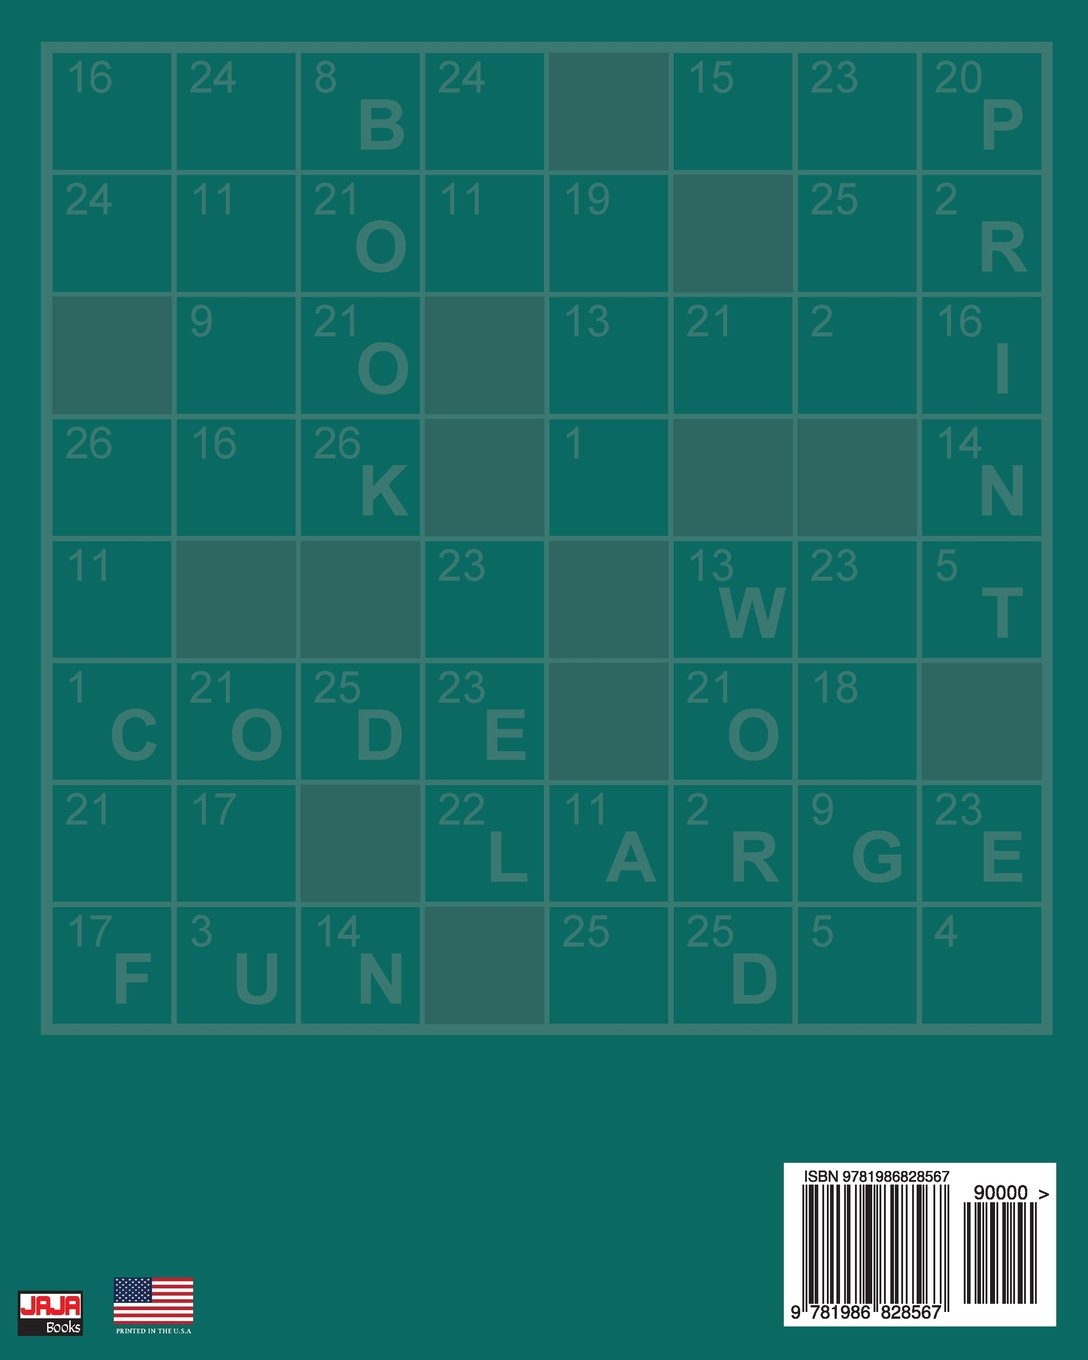 Large Print CODE WORD Book 1: Volume 1 (Large Print CODE WORD Book: 100  plus puzzles for hours of entertaining fun.): Amazon.co.uk: Jaja Books: ...